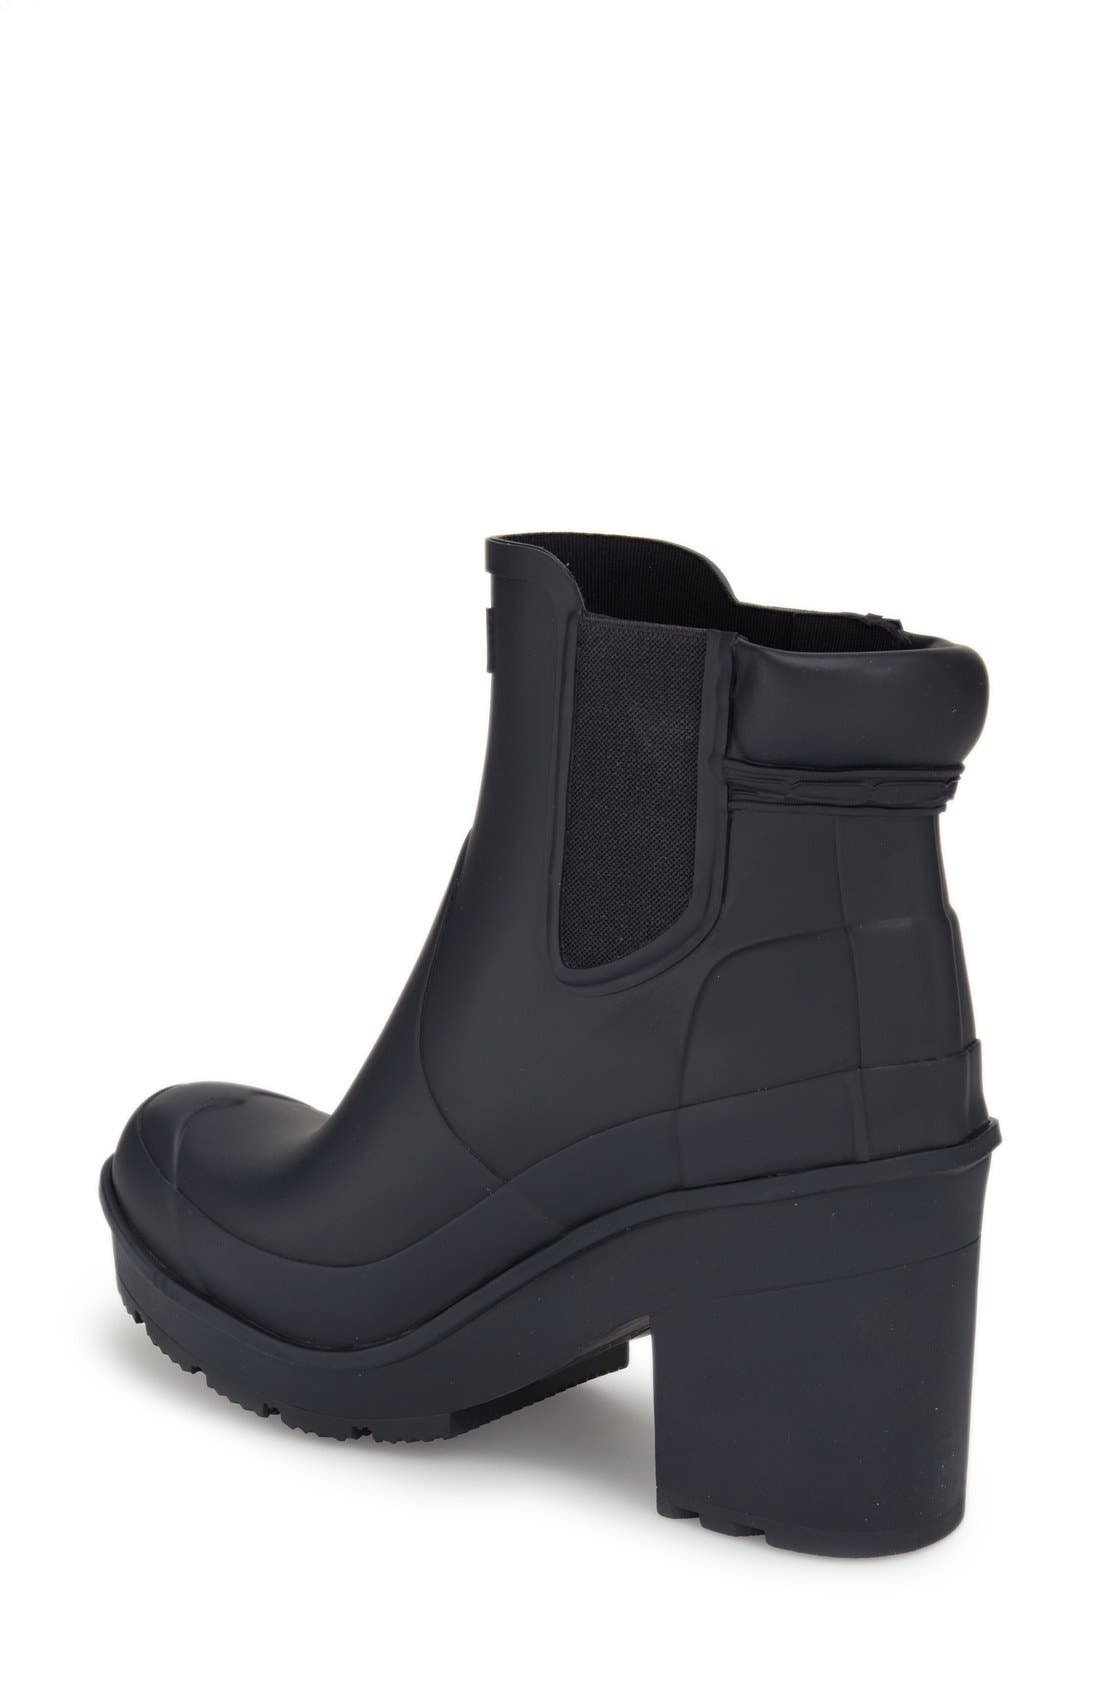 Alternate Image 2  - Hunter 'Original - Block Heel' Chelsea Rain Boot (Women)